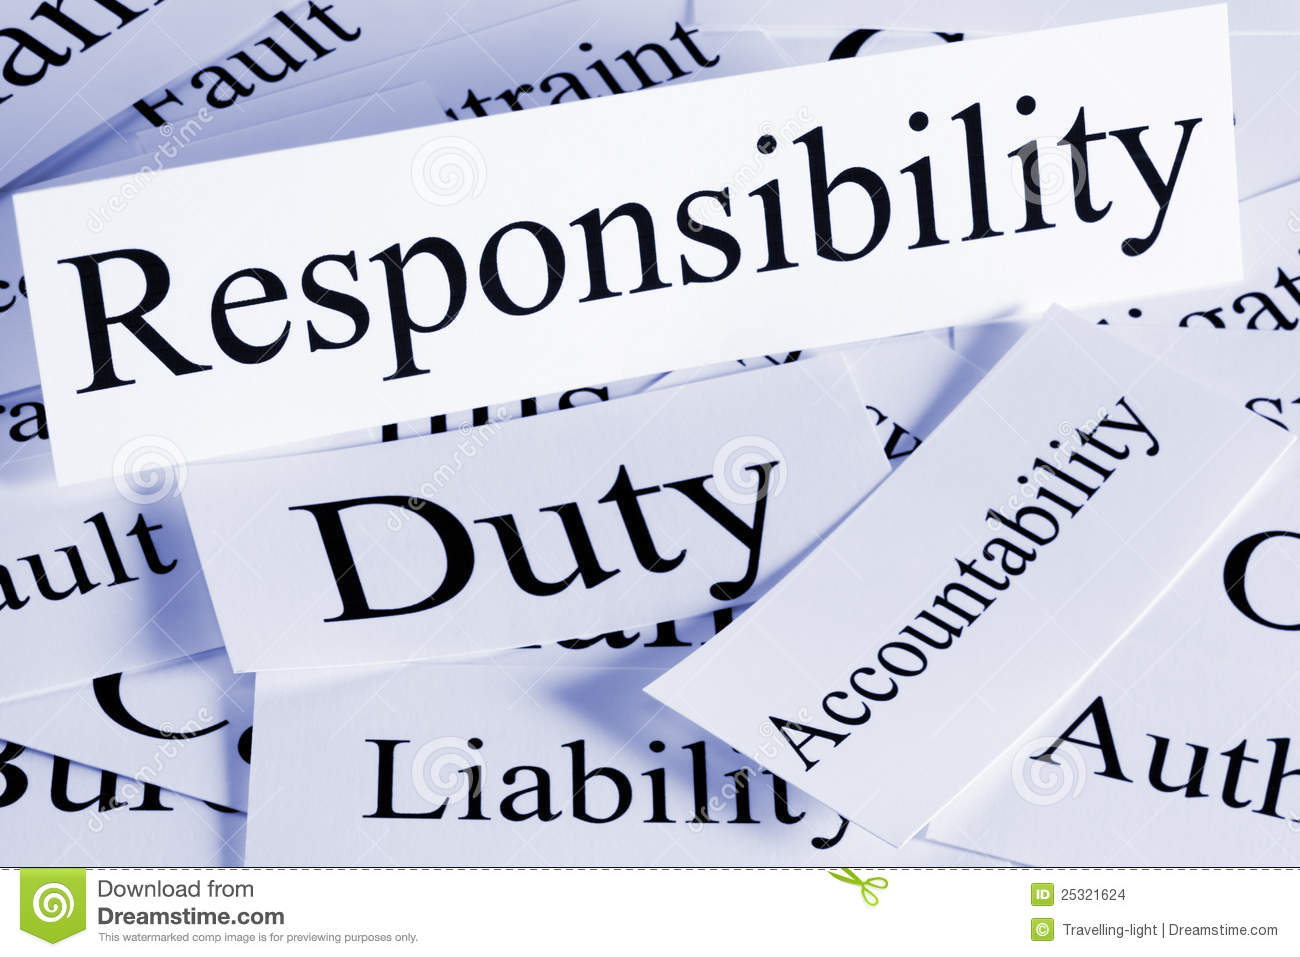 conceptual look at responsibility, Duty, Accountability, Liability.